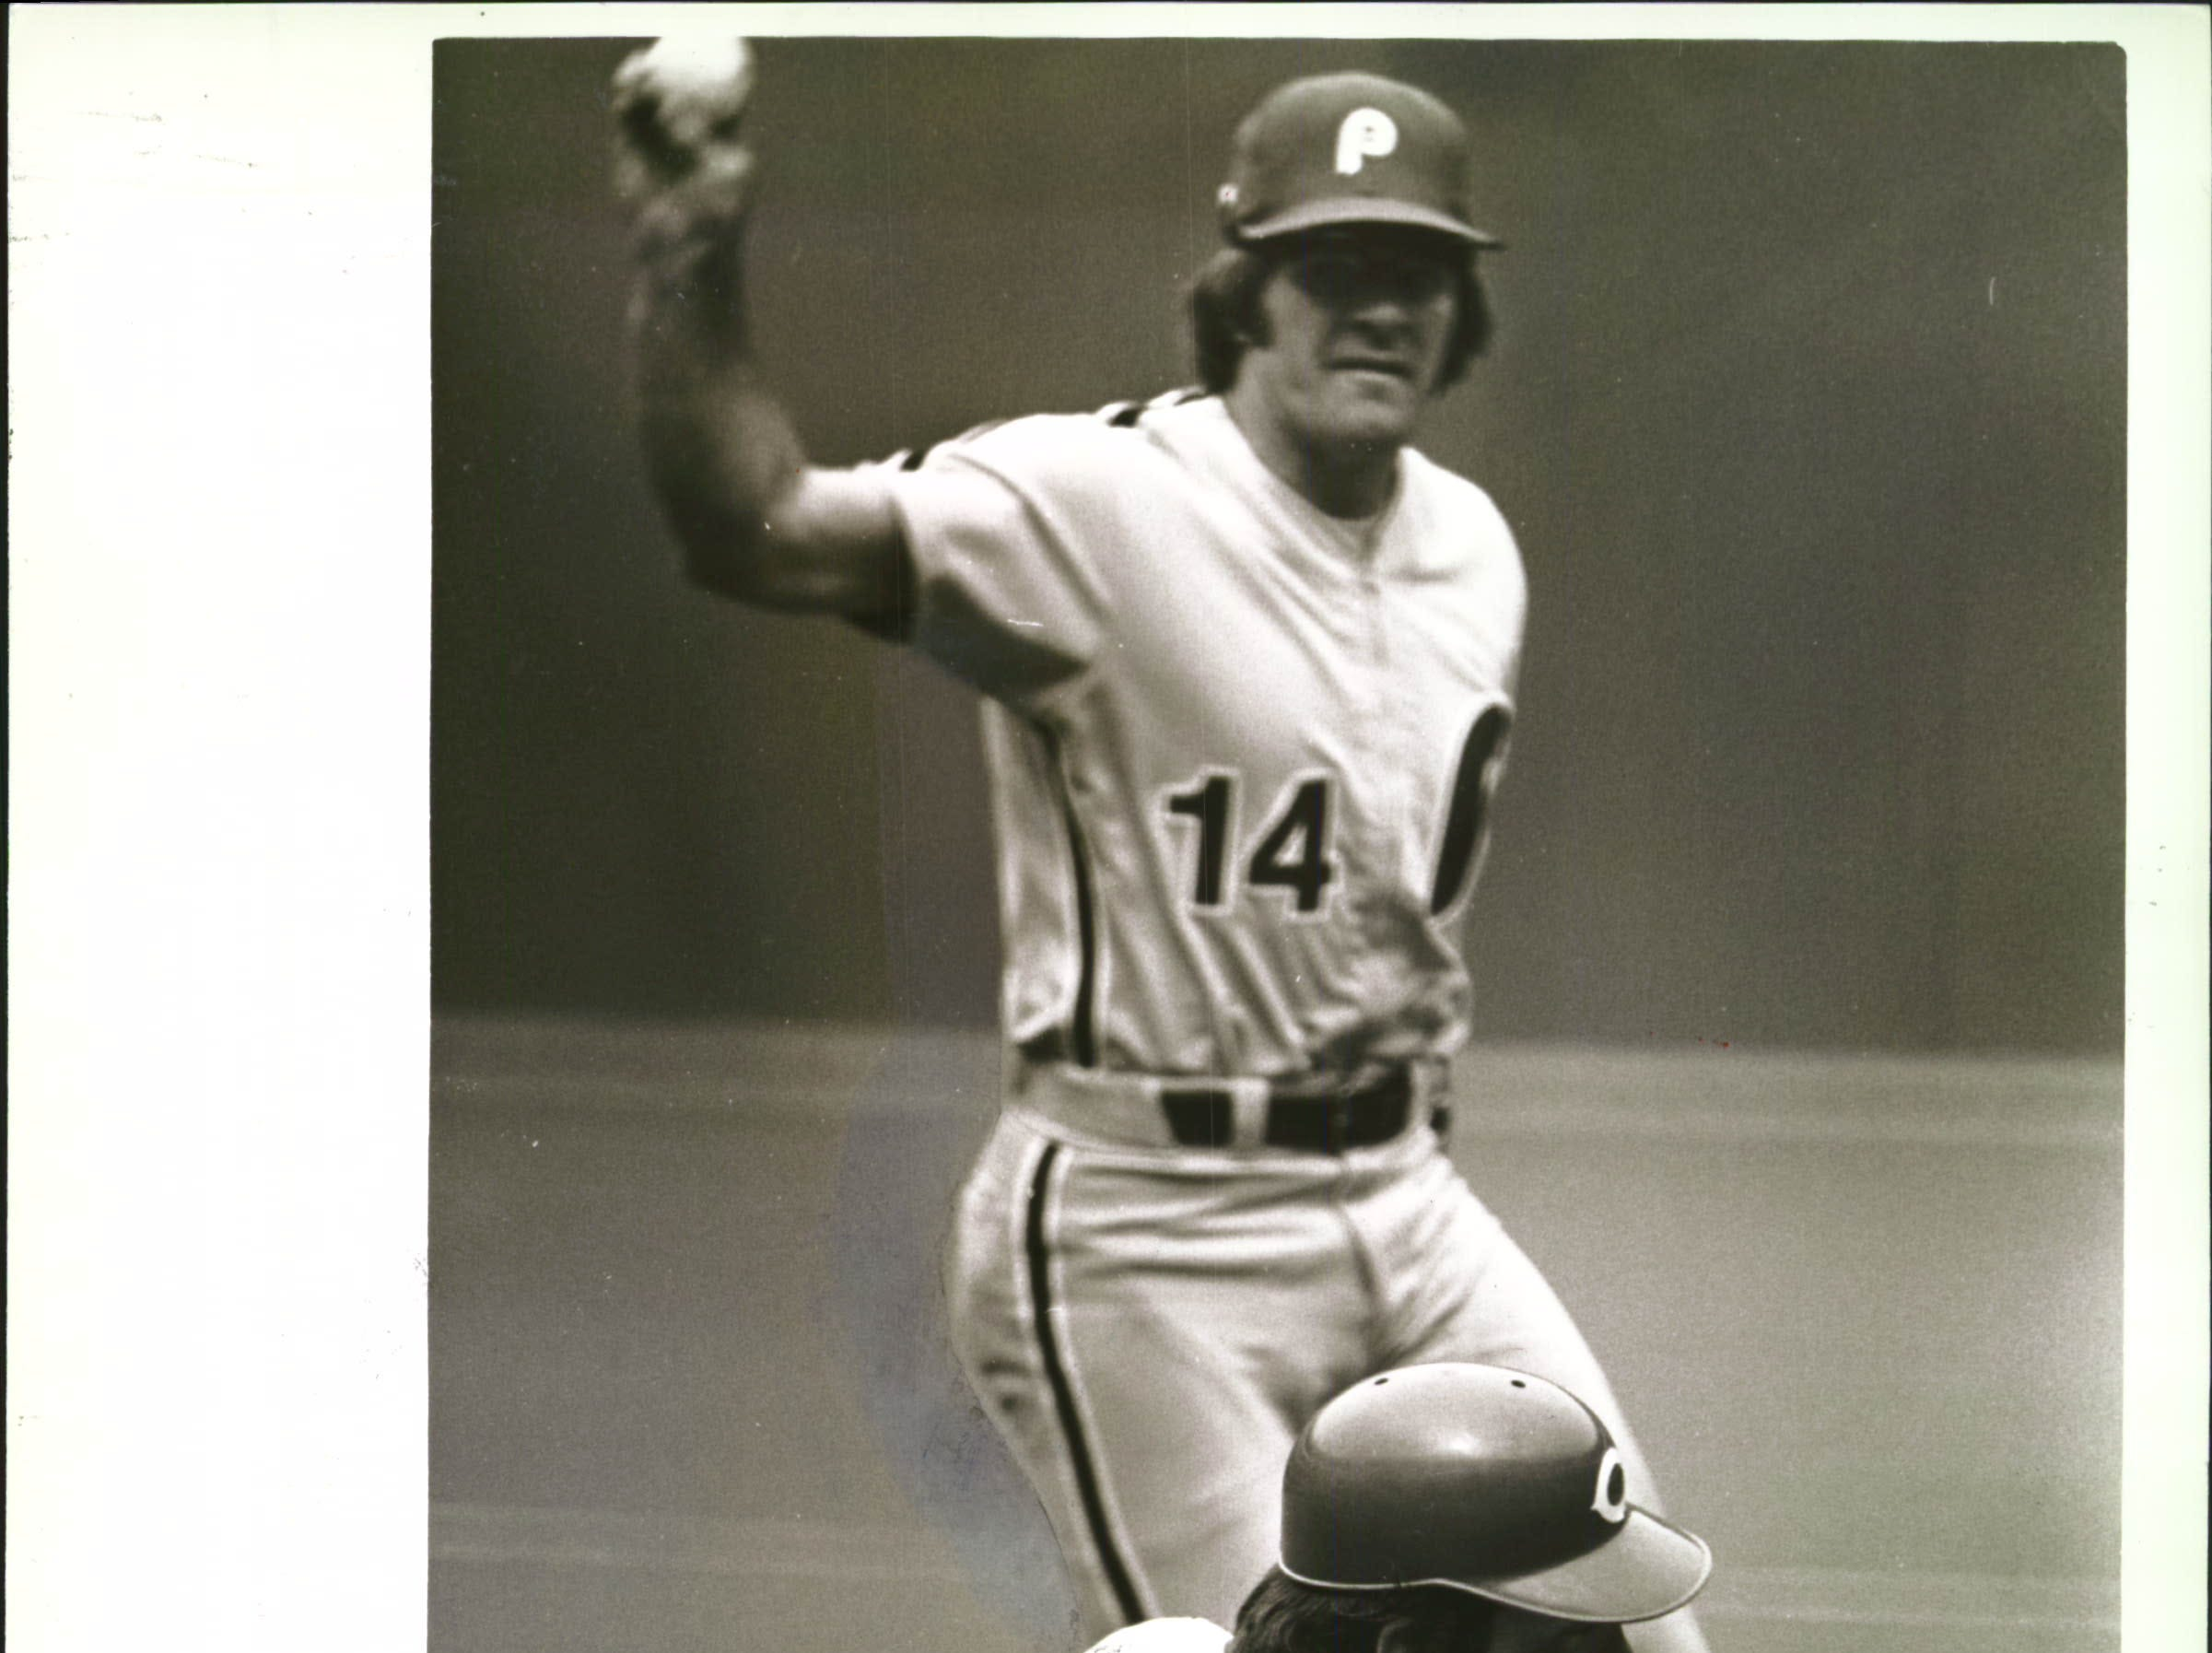 JUNE 3, 1979: Pete Rose tags out Johnny Bench of the Reds in the eighth inning. Dan Driessen had lined to Rose, who doubled Bench off first base. The Enquirer/Michael E. Keating